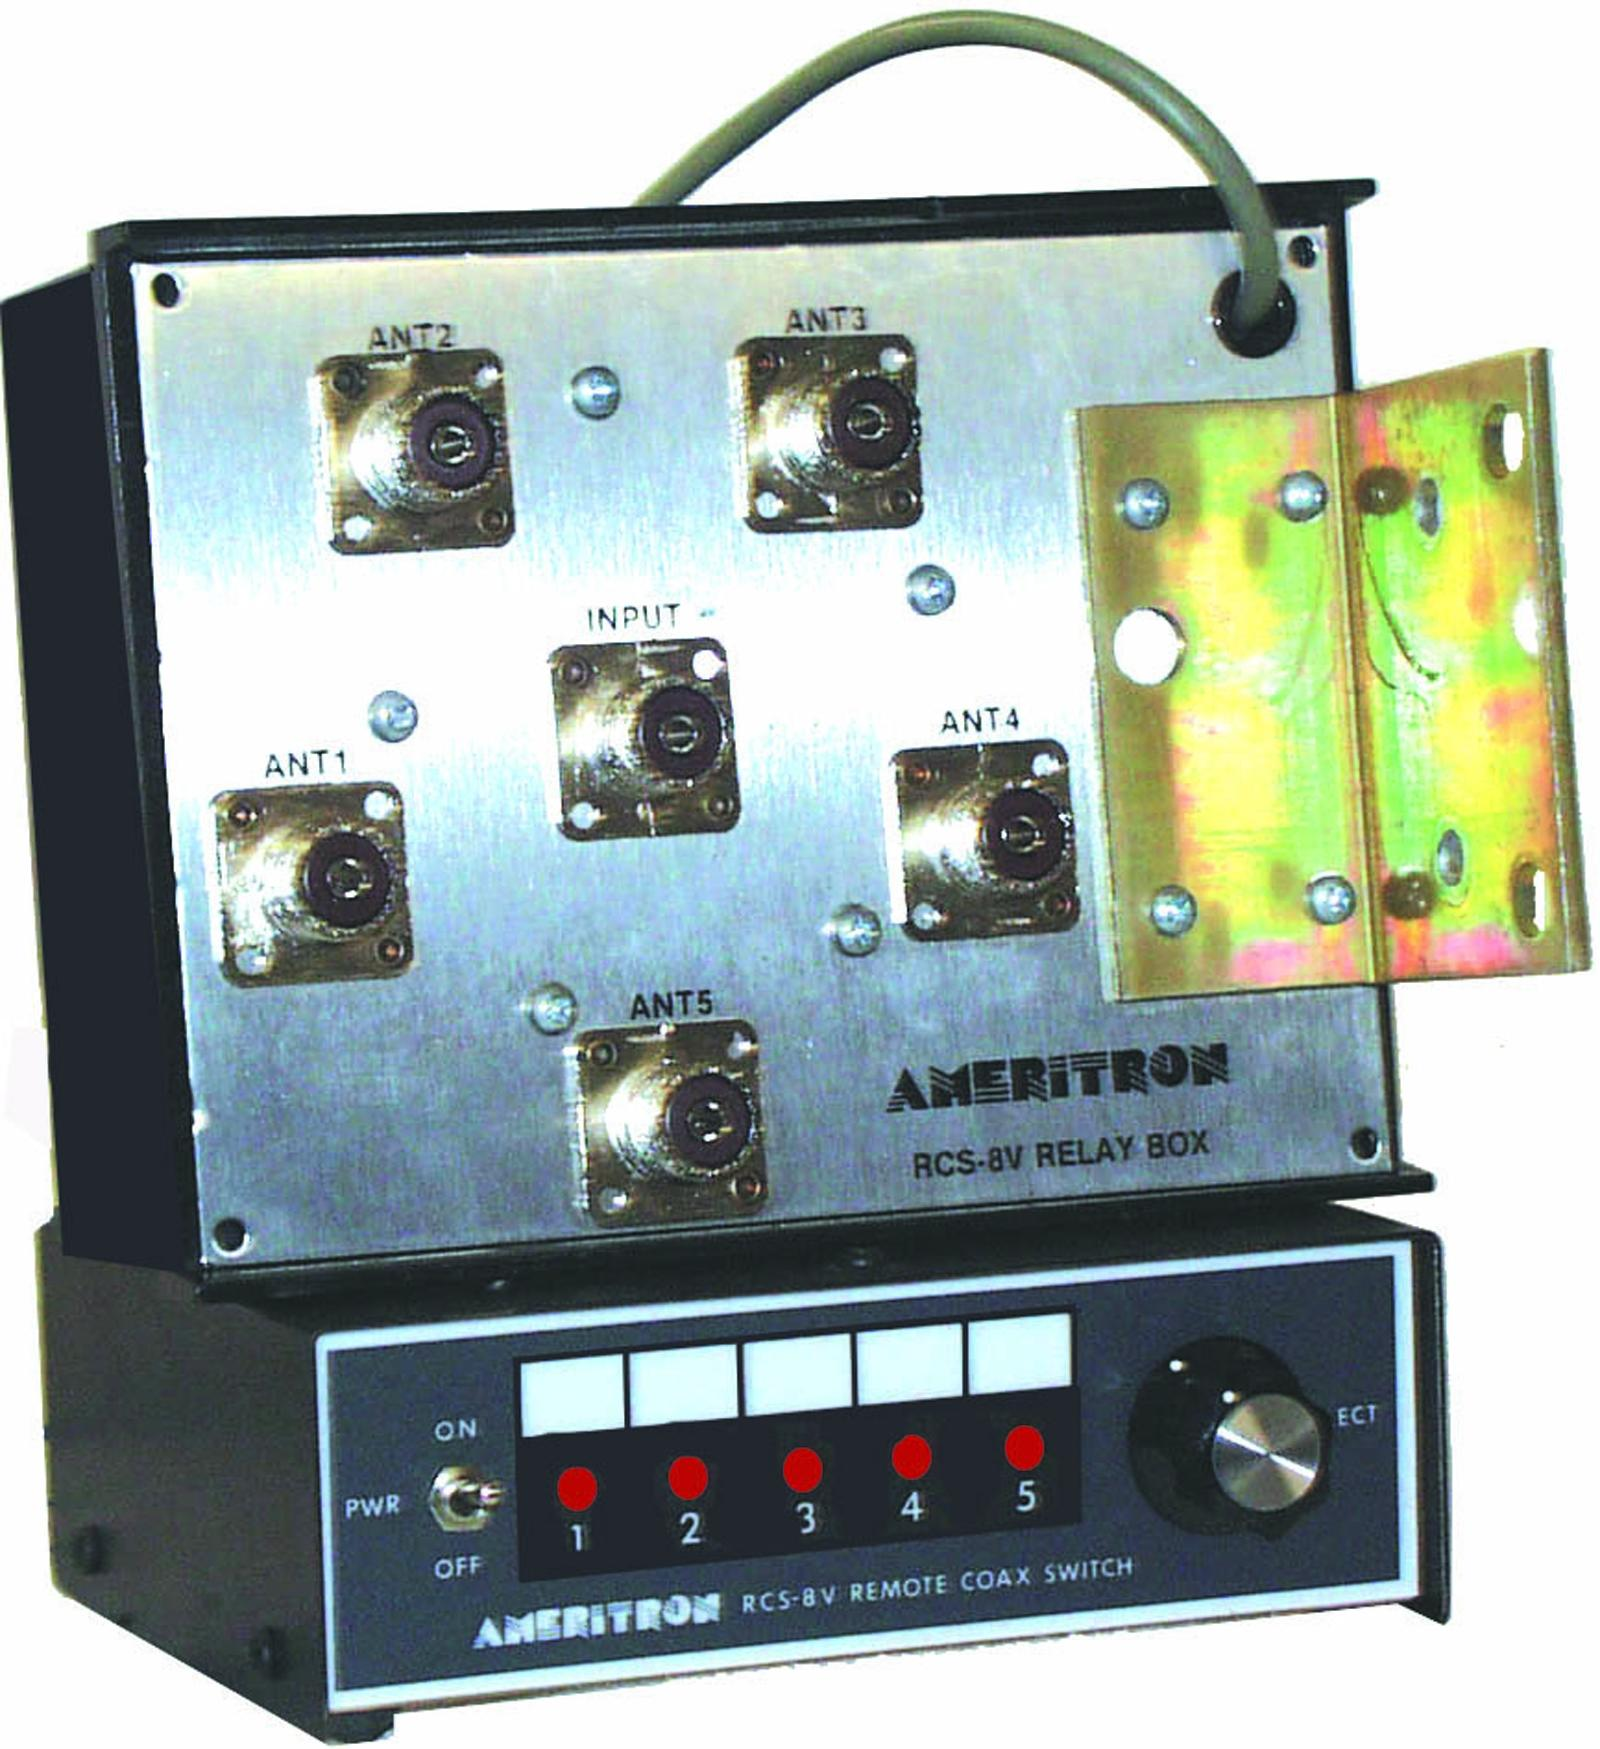 Ameritron 5-way Remote Coax Switch (SO-239) RCS-8VLX